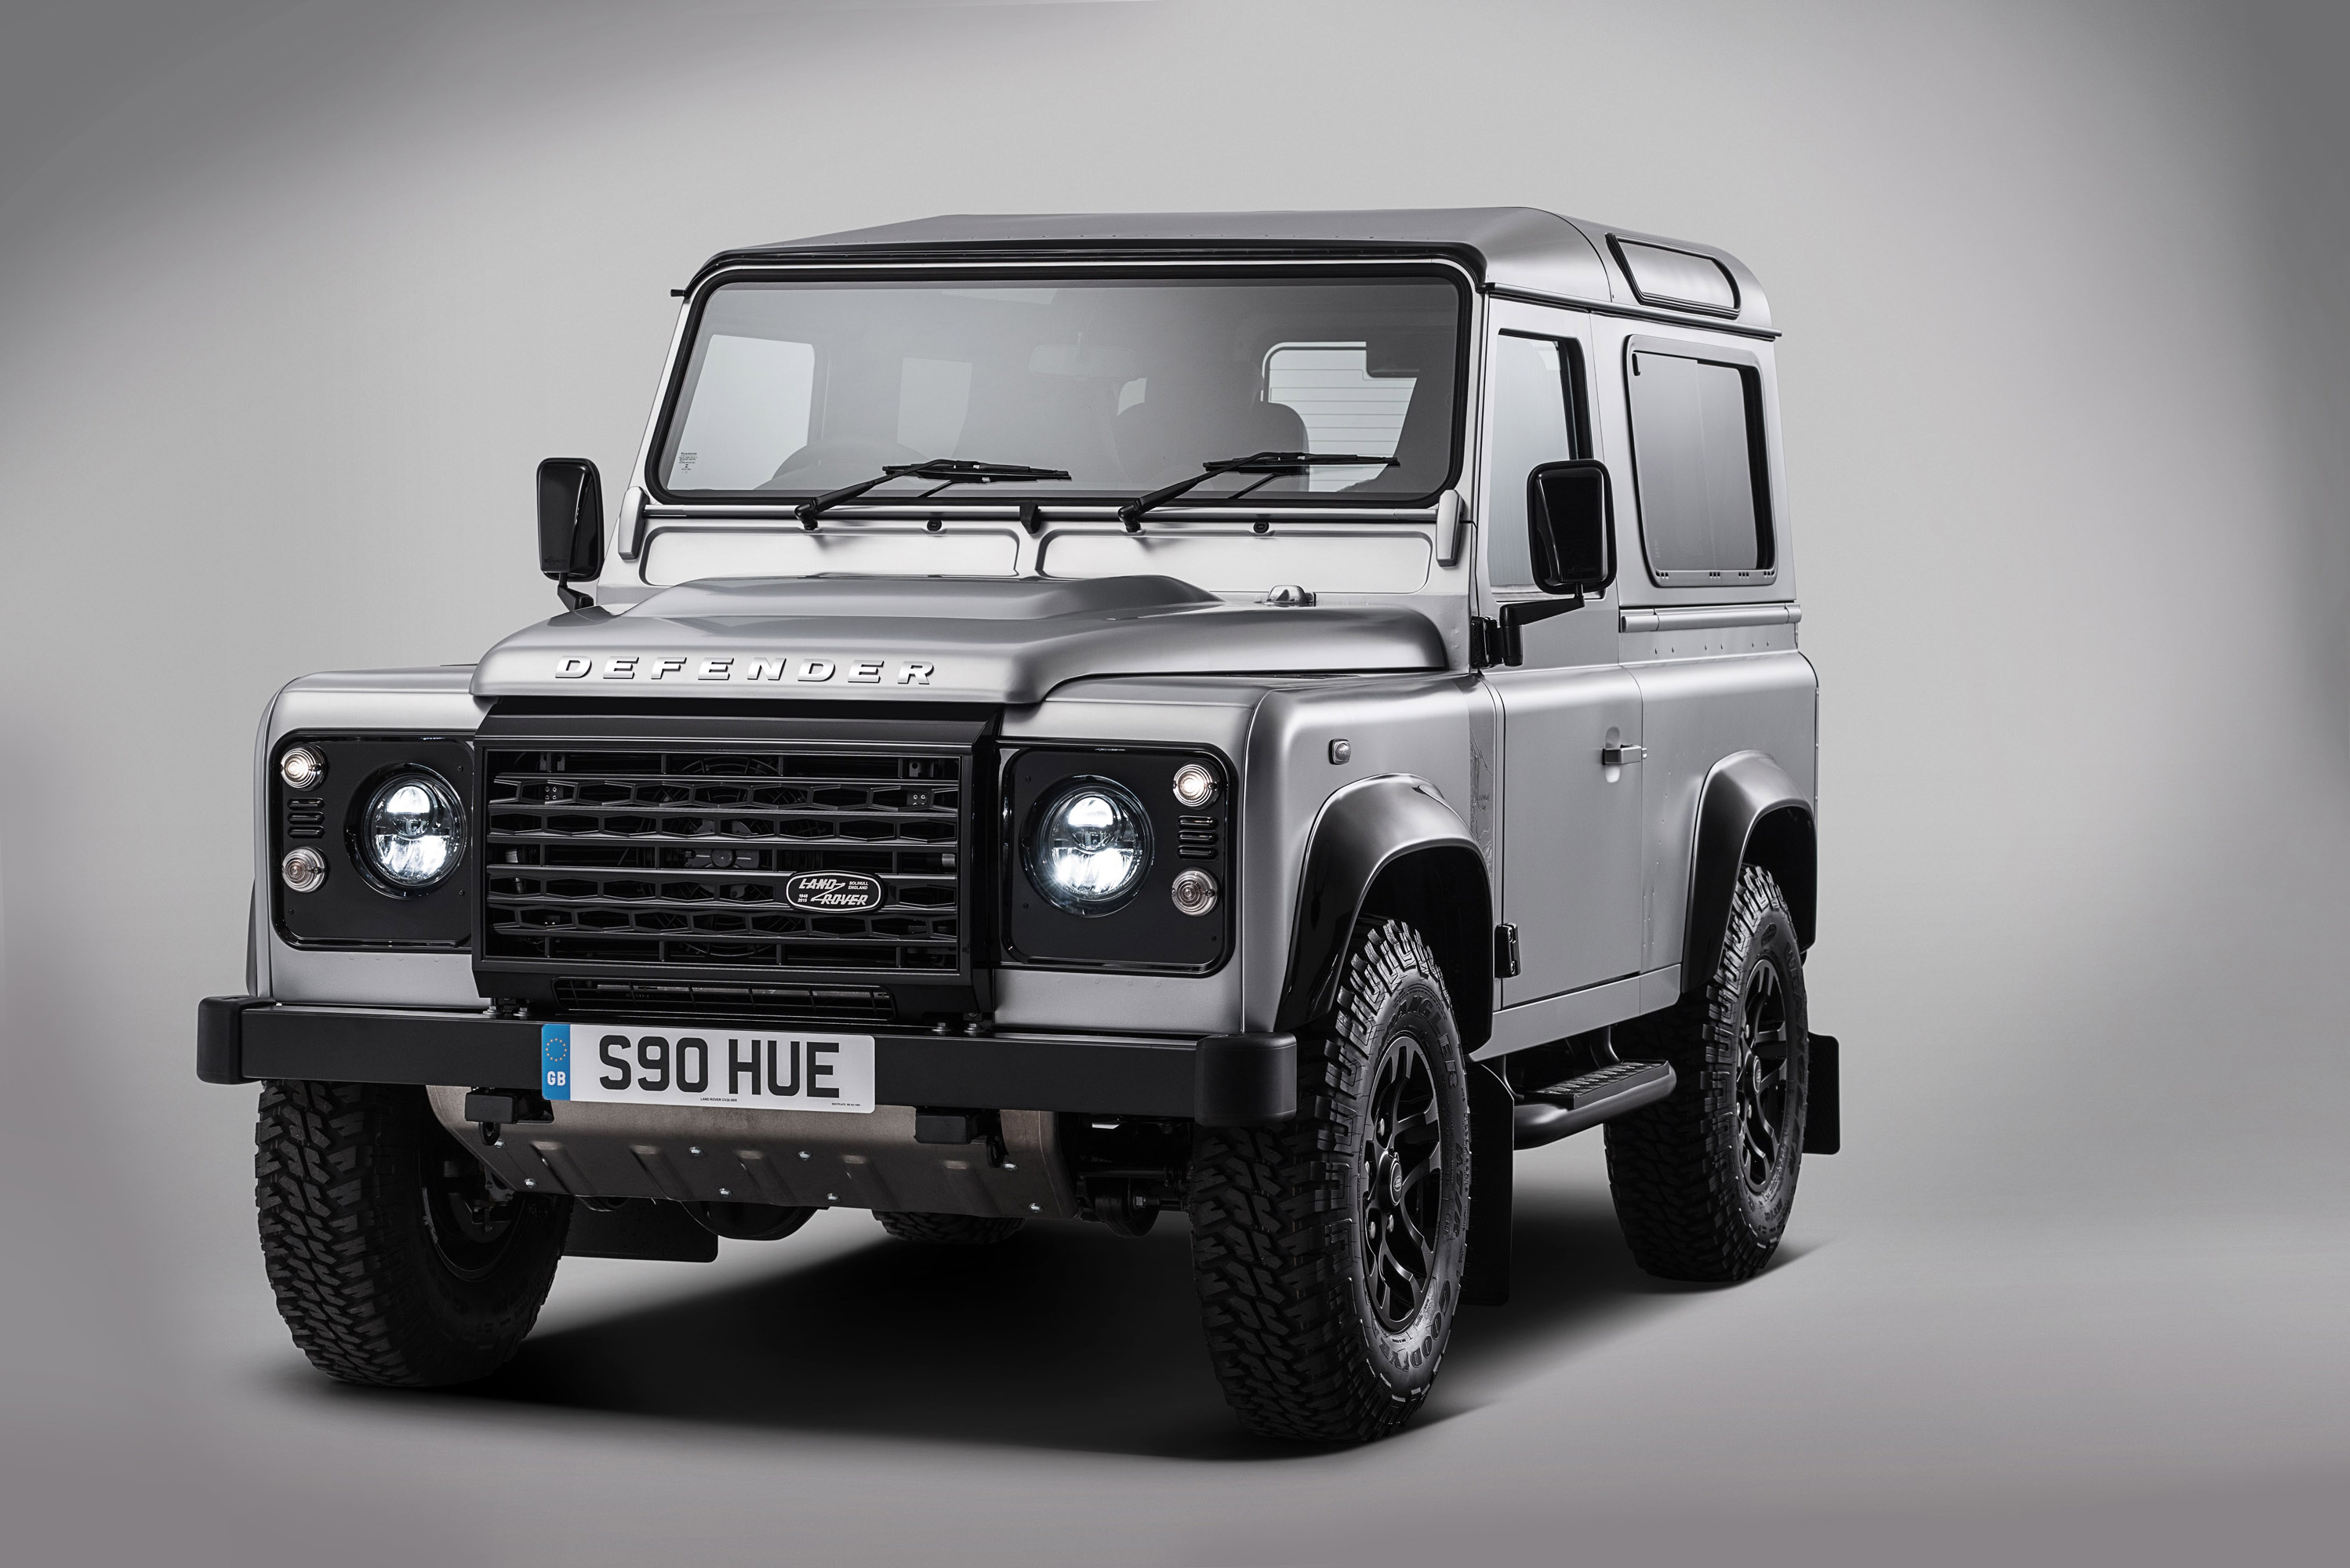 land rover defender celebrates 70th anniversary with special model. Black Bedroom Furniture Sets. Home Design Ideas